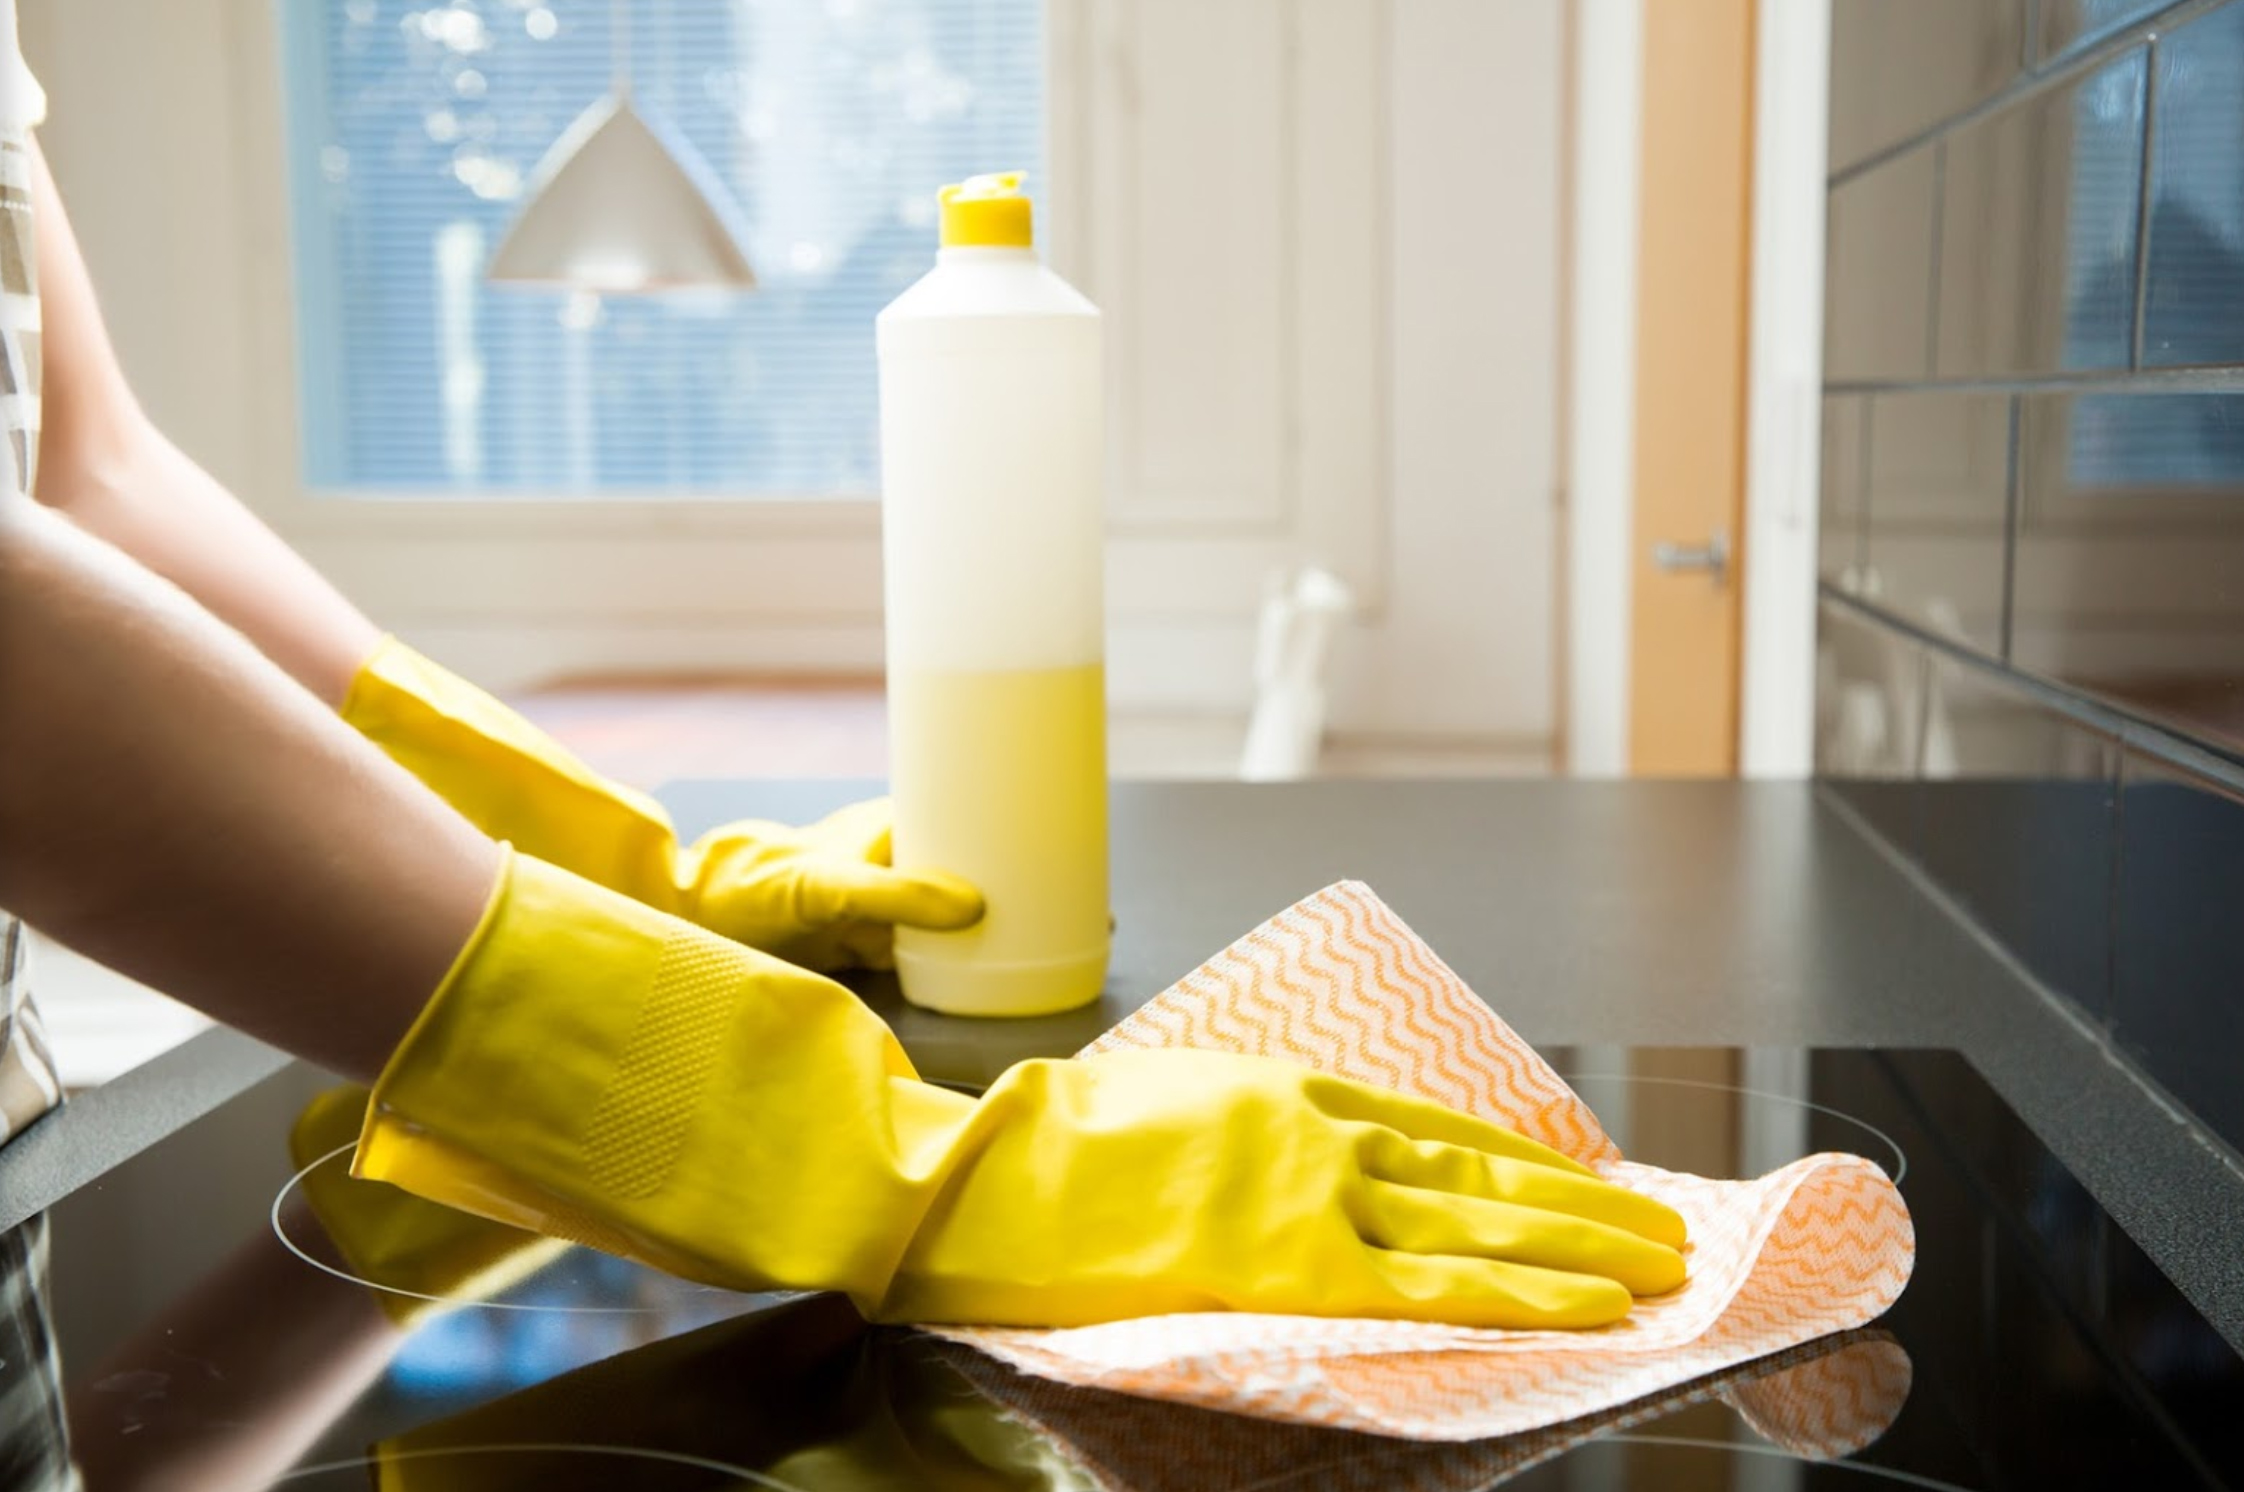 We'll give you an hour of trial cleaning in your own four walls